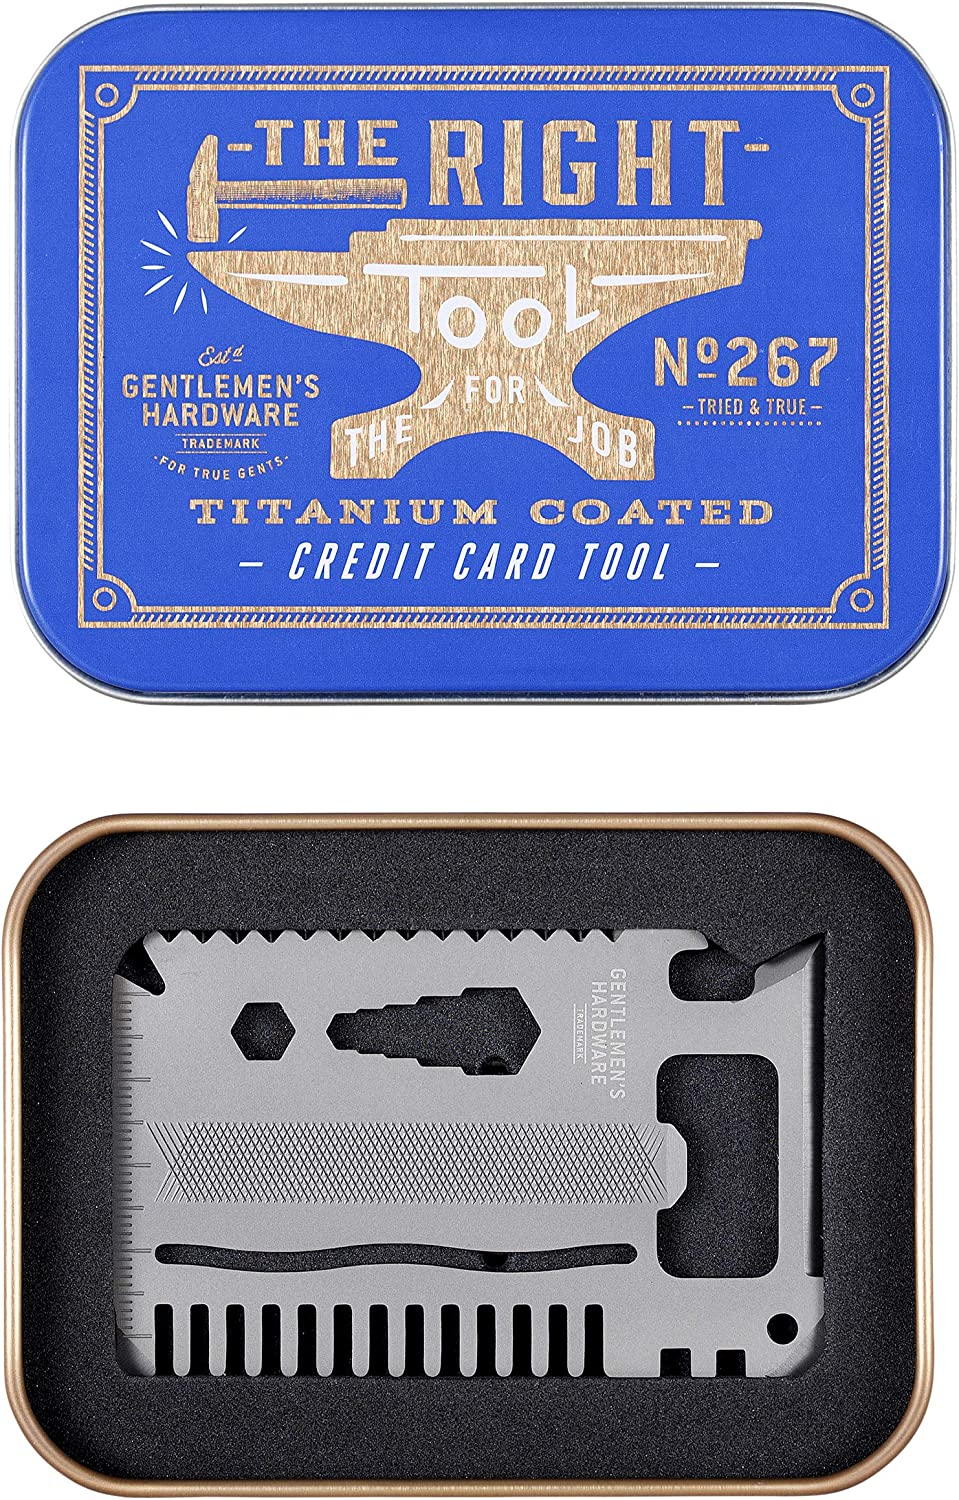 Gentlemen s Hardware 15-in-1 Titanium Coated Stainless Steel Credit Card Pocket Multi Tool